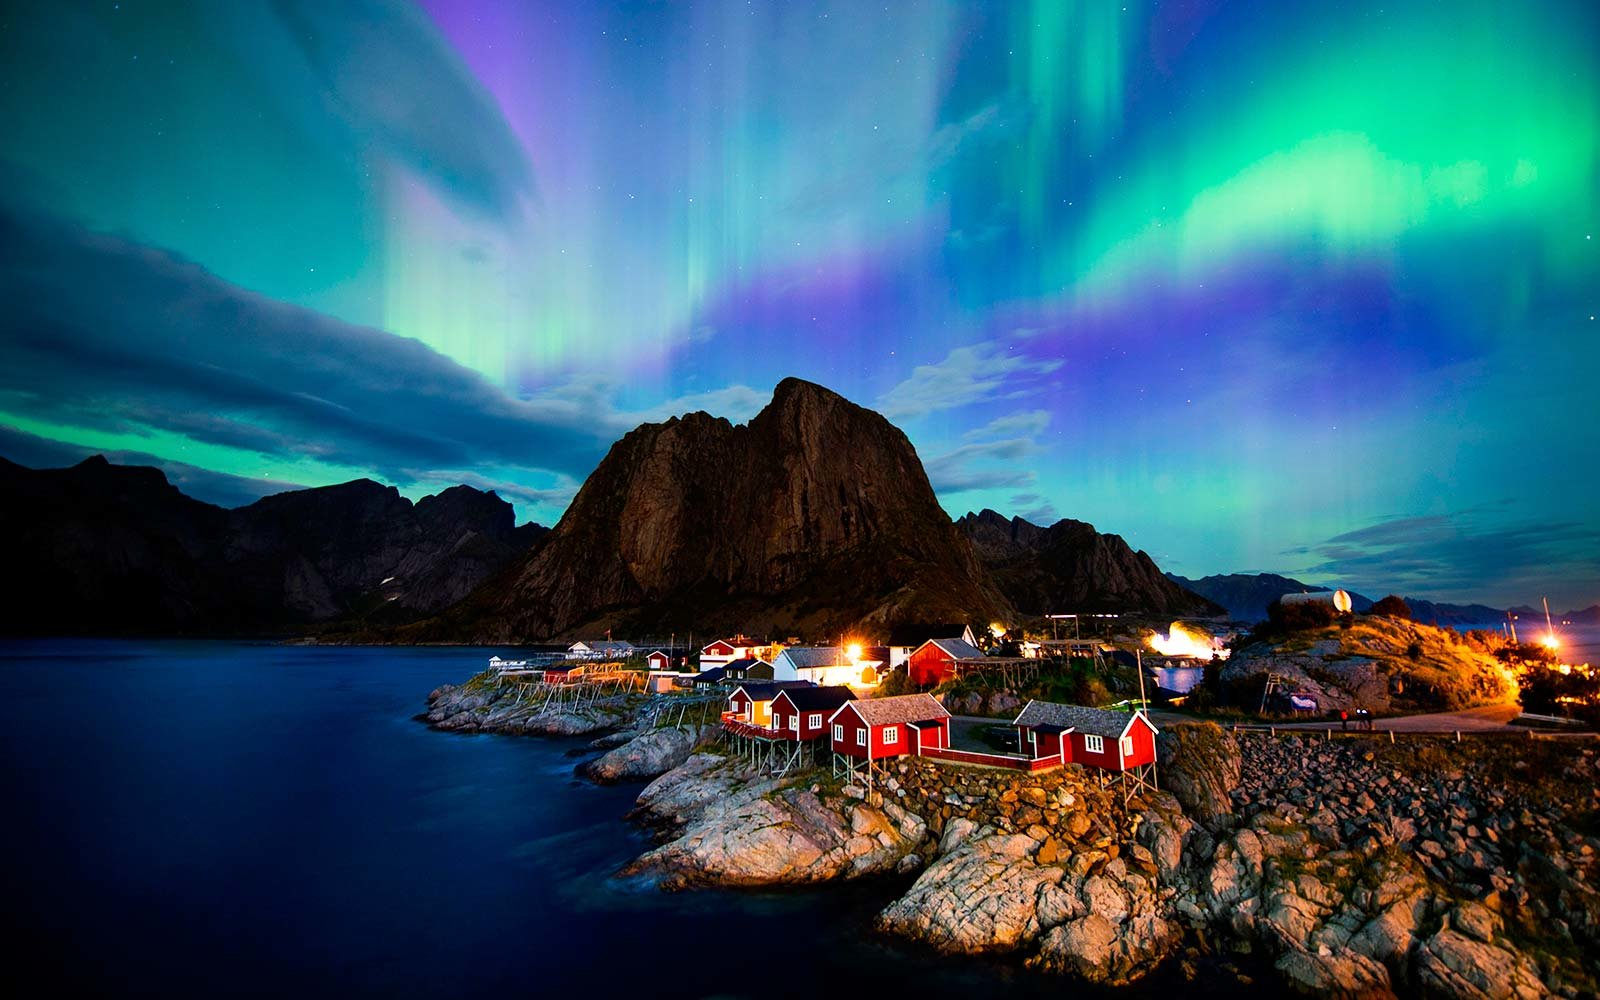 lofoten islands norway arctic aurora borealis northern lights